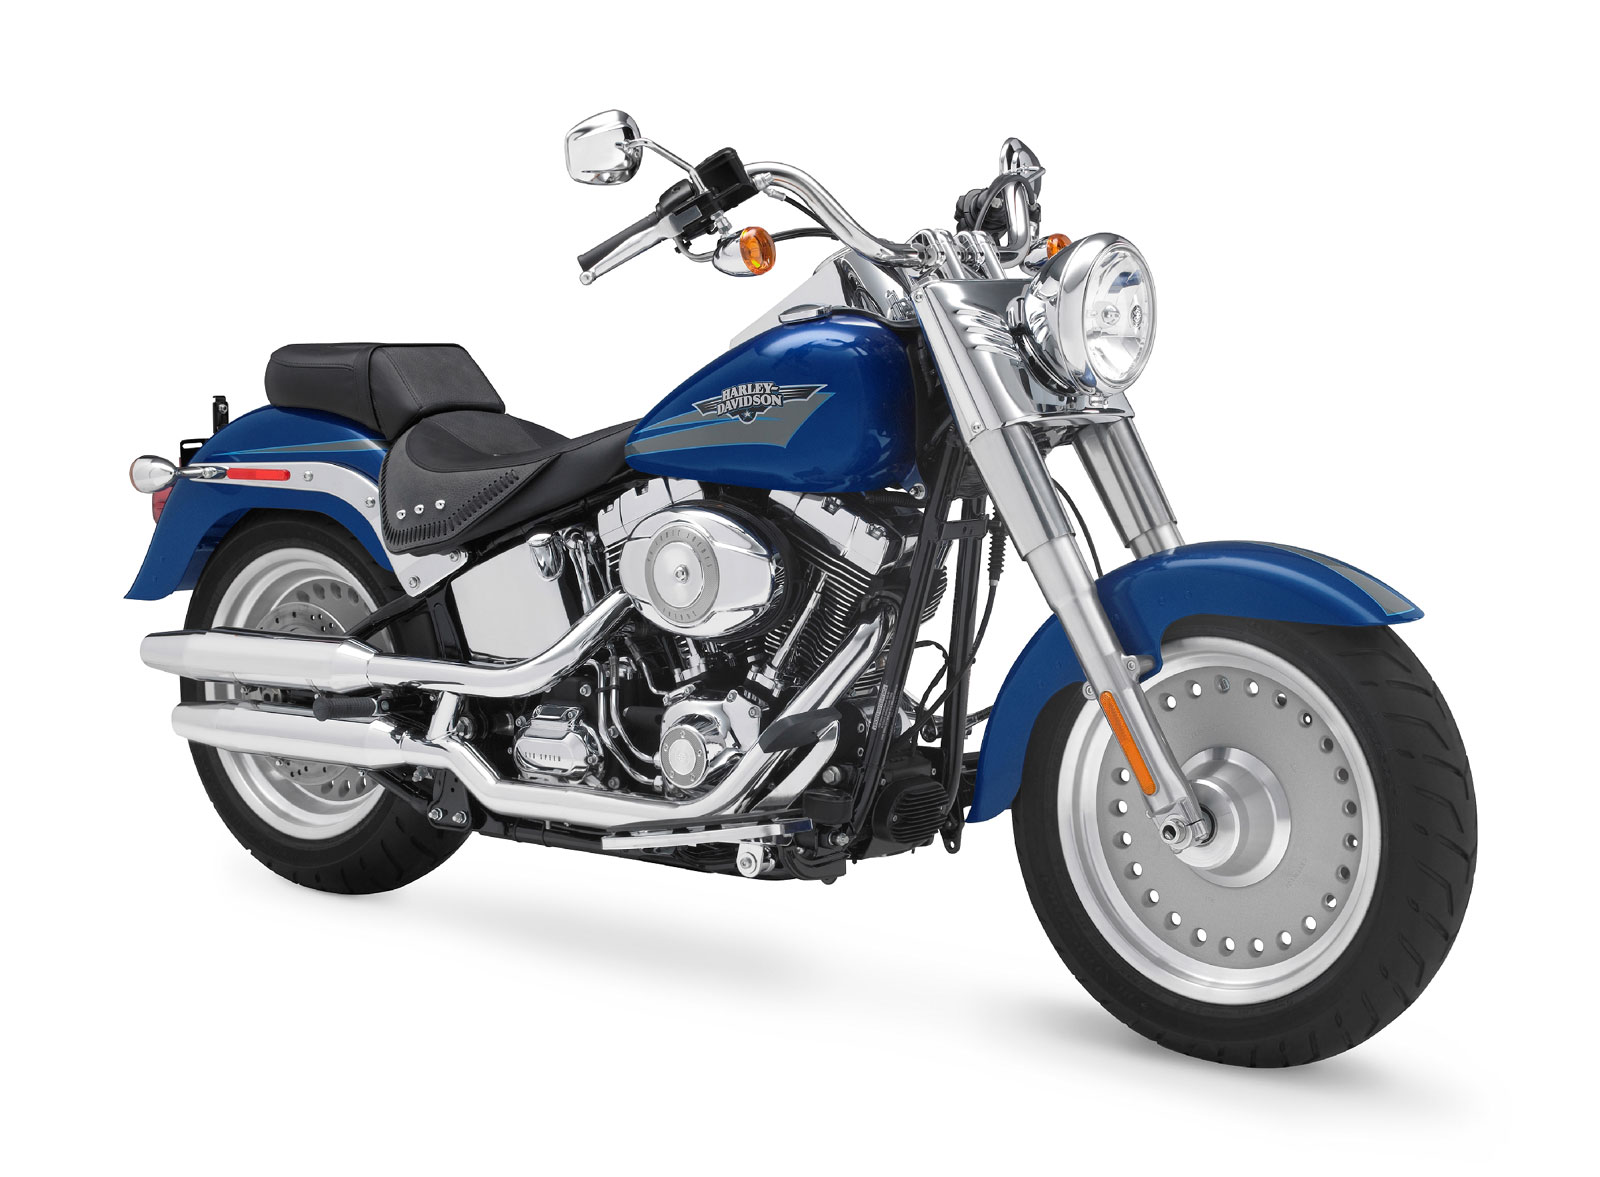 Harley-Davidson FLSTF Fat Boy 2009 images #80415